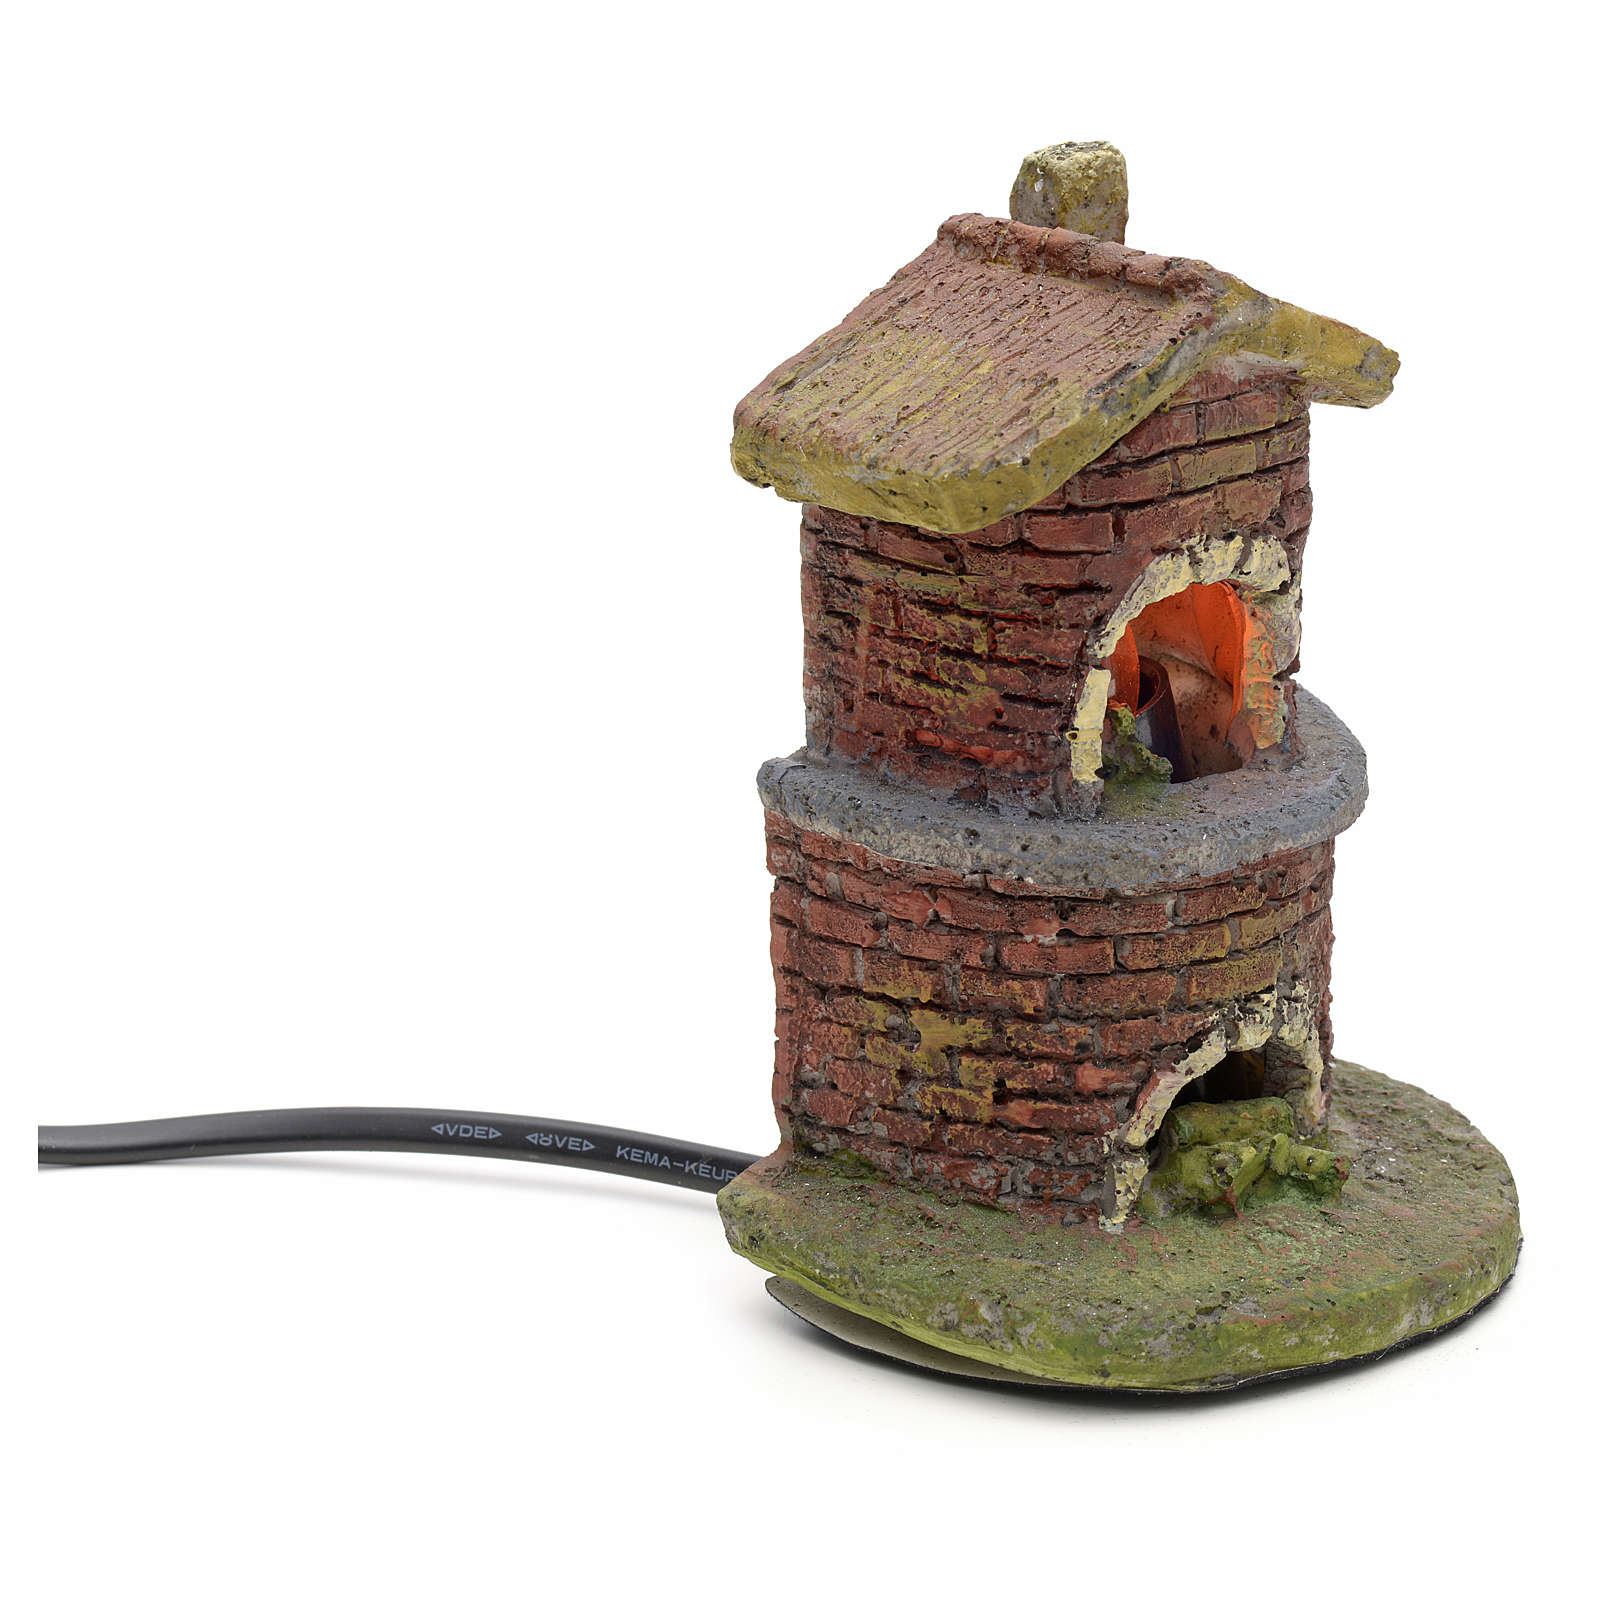 Nativity accessory, oven with flame effect light 4